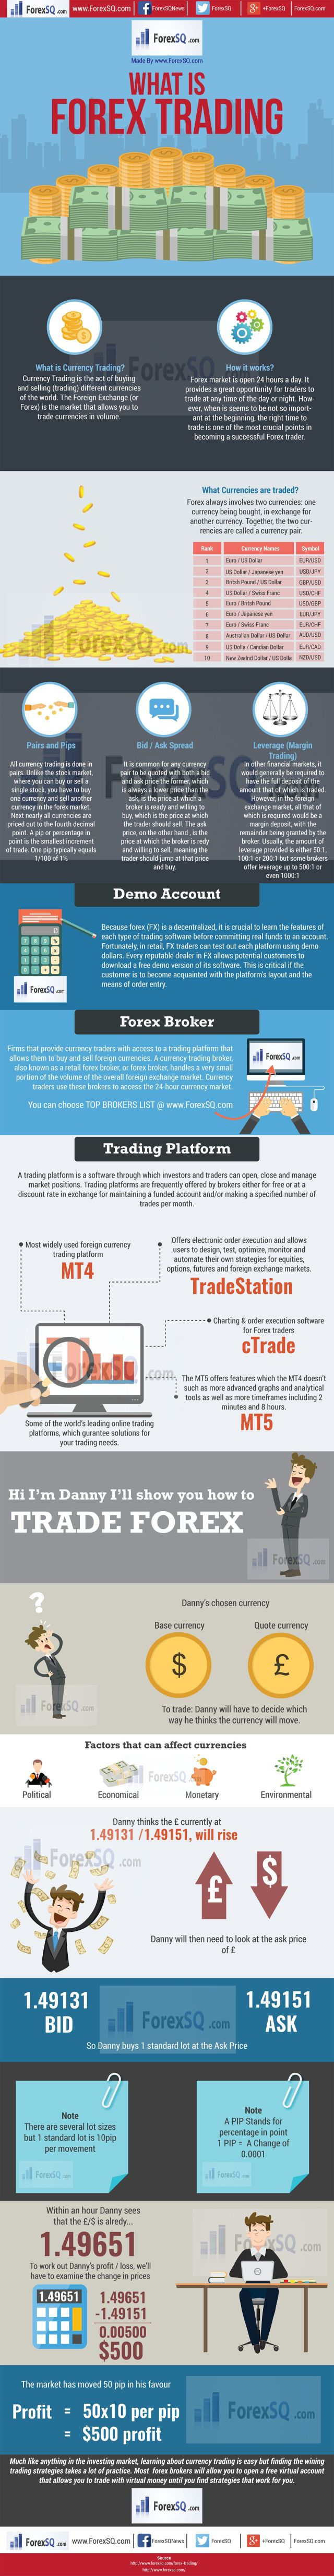 Definition of Trading